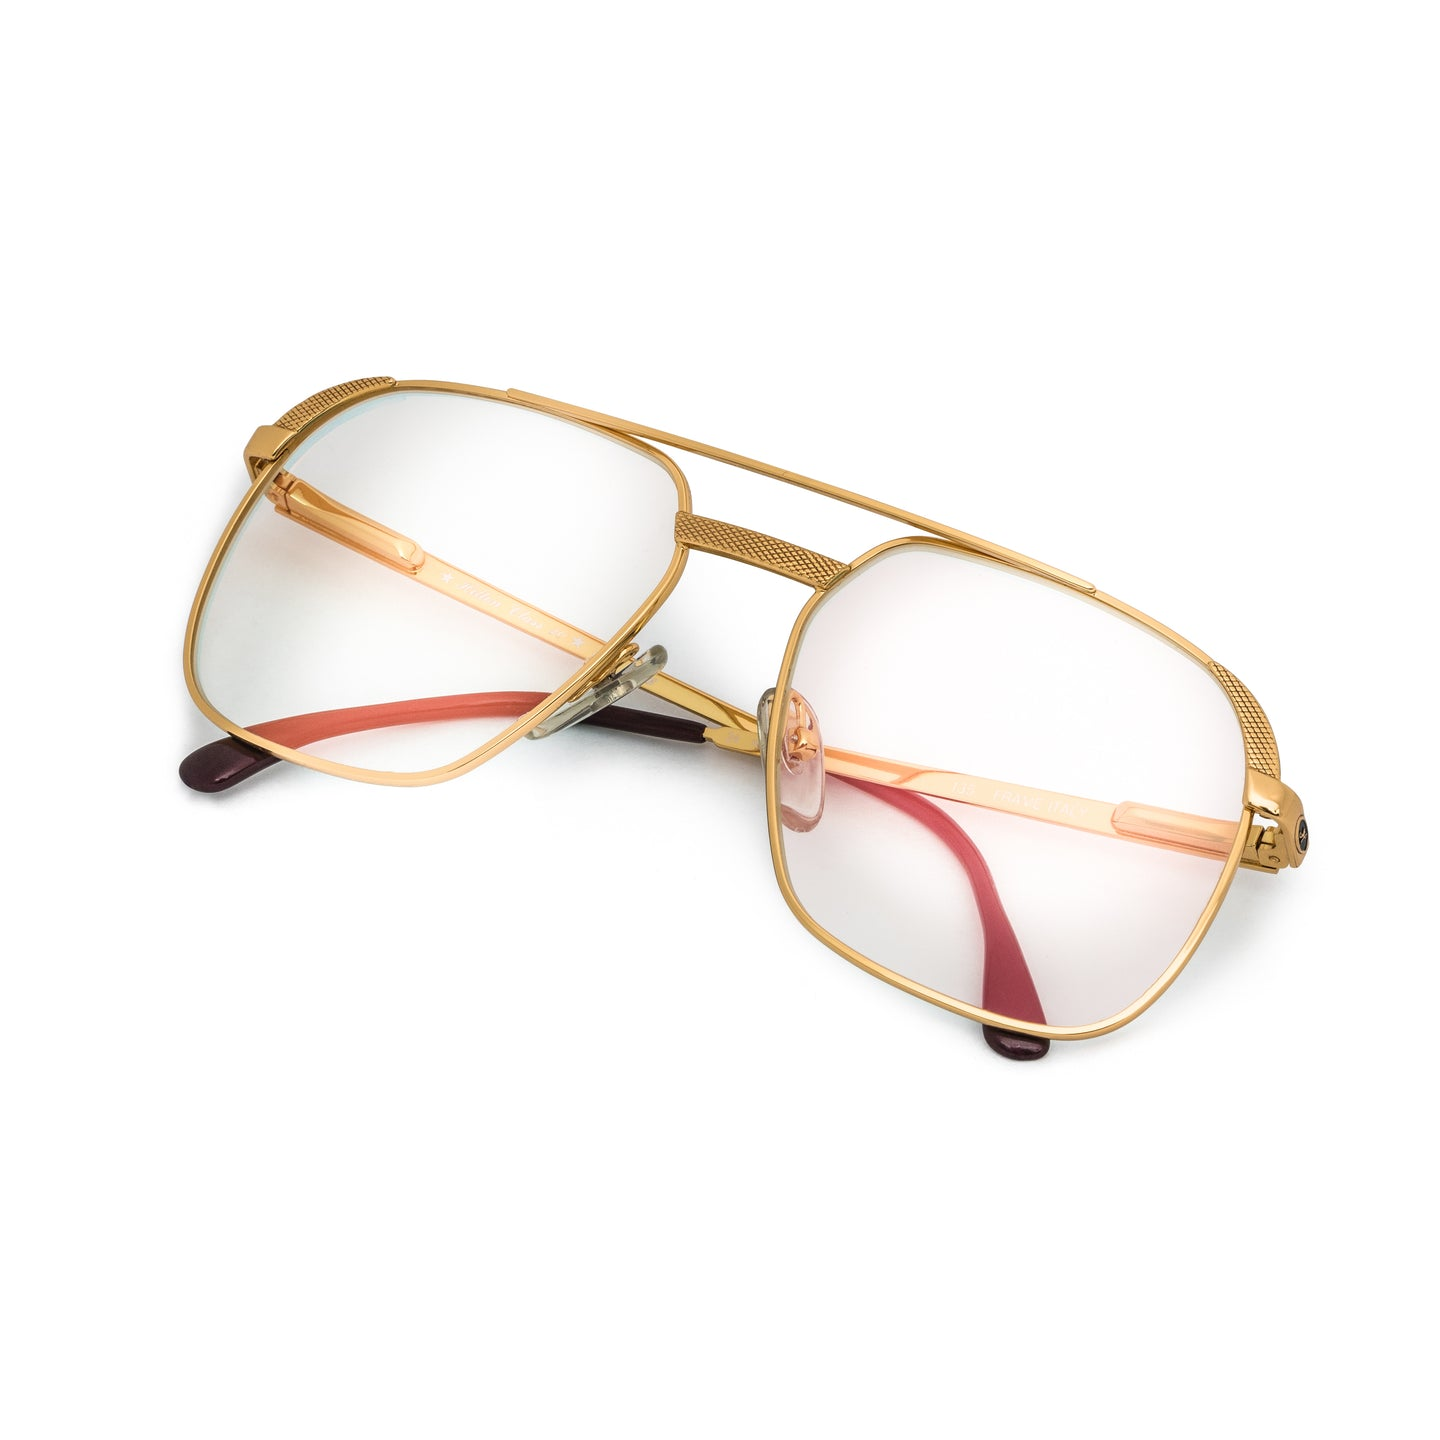 Vintage Hilton Class 10 995 (Multi Flash) Thumbnail, Hilton , glasses frames, eyeglasses online, eyeglass frames, mens glasses, womens glasses, buy glasses online, designer eyeglasses, vintage sunglasses, retro sunglasses, vintage glasses, sunglass, eyeglass, glasses, lens, vintage frames company, vf